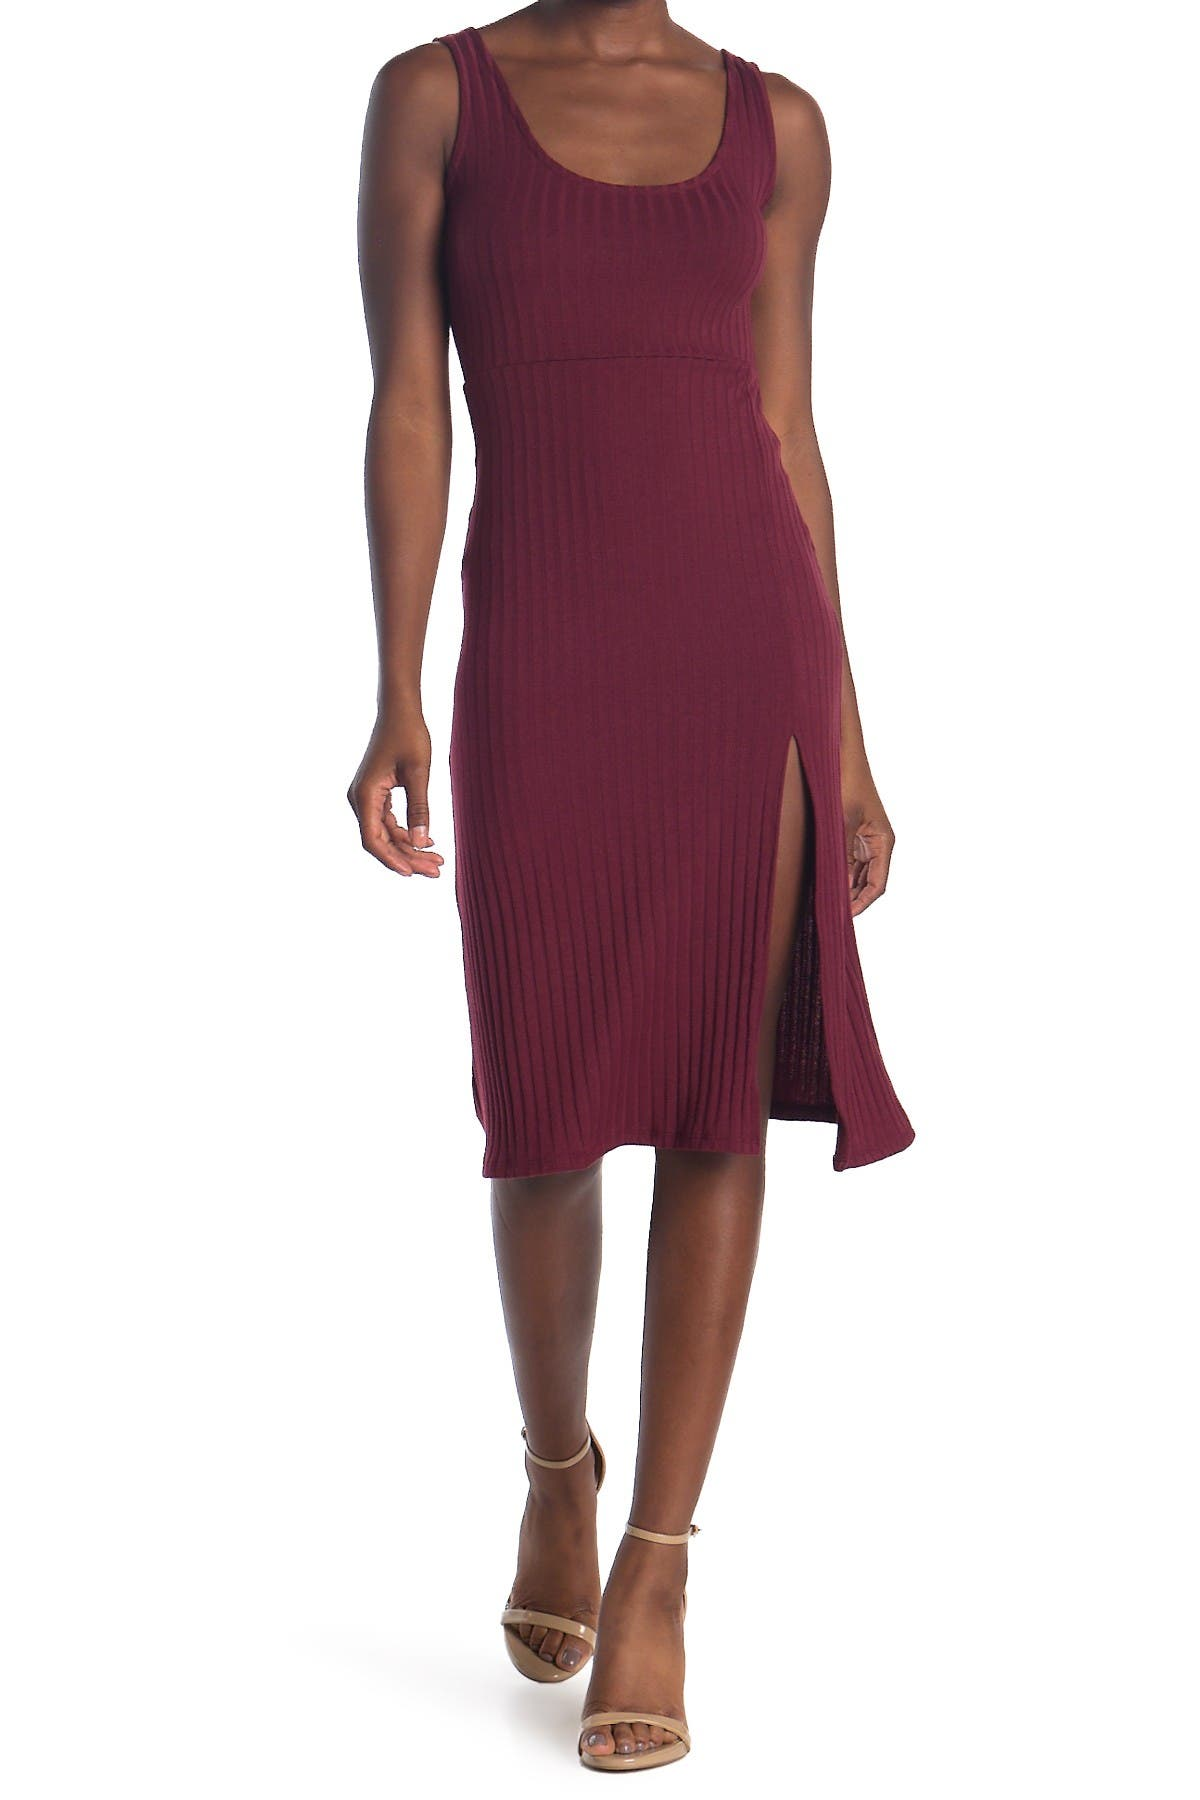 Image of Velvet Torch Side Split Ribbed Knit Midi Dress